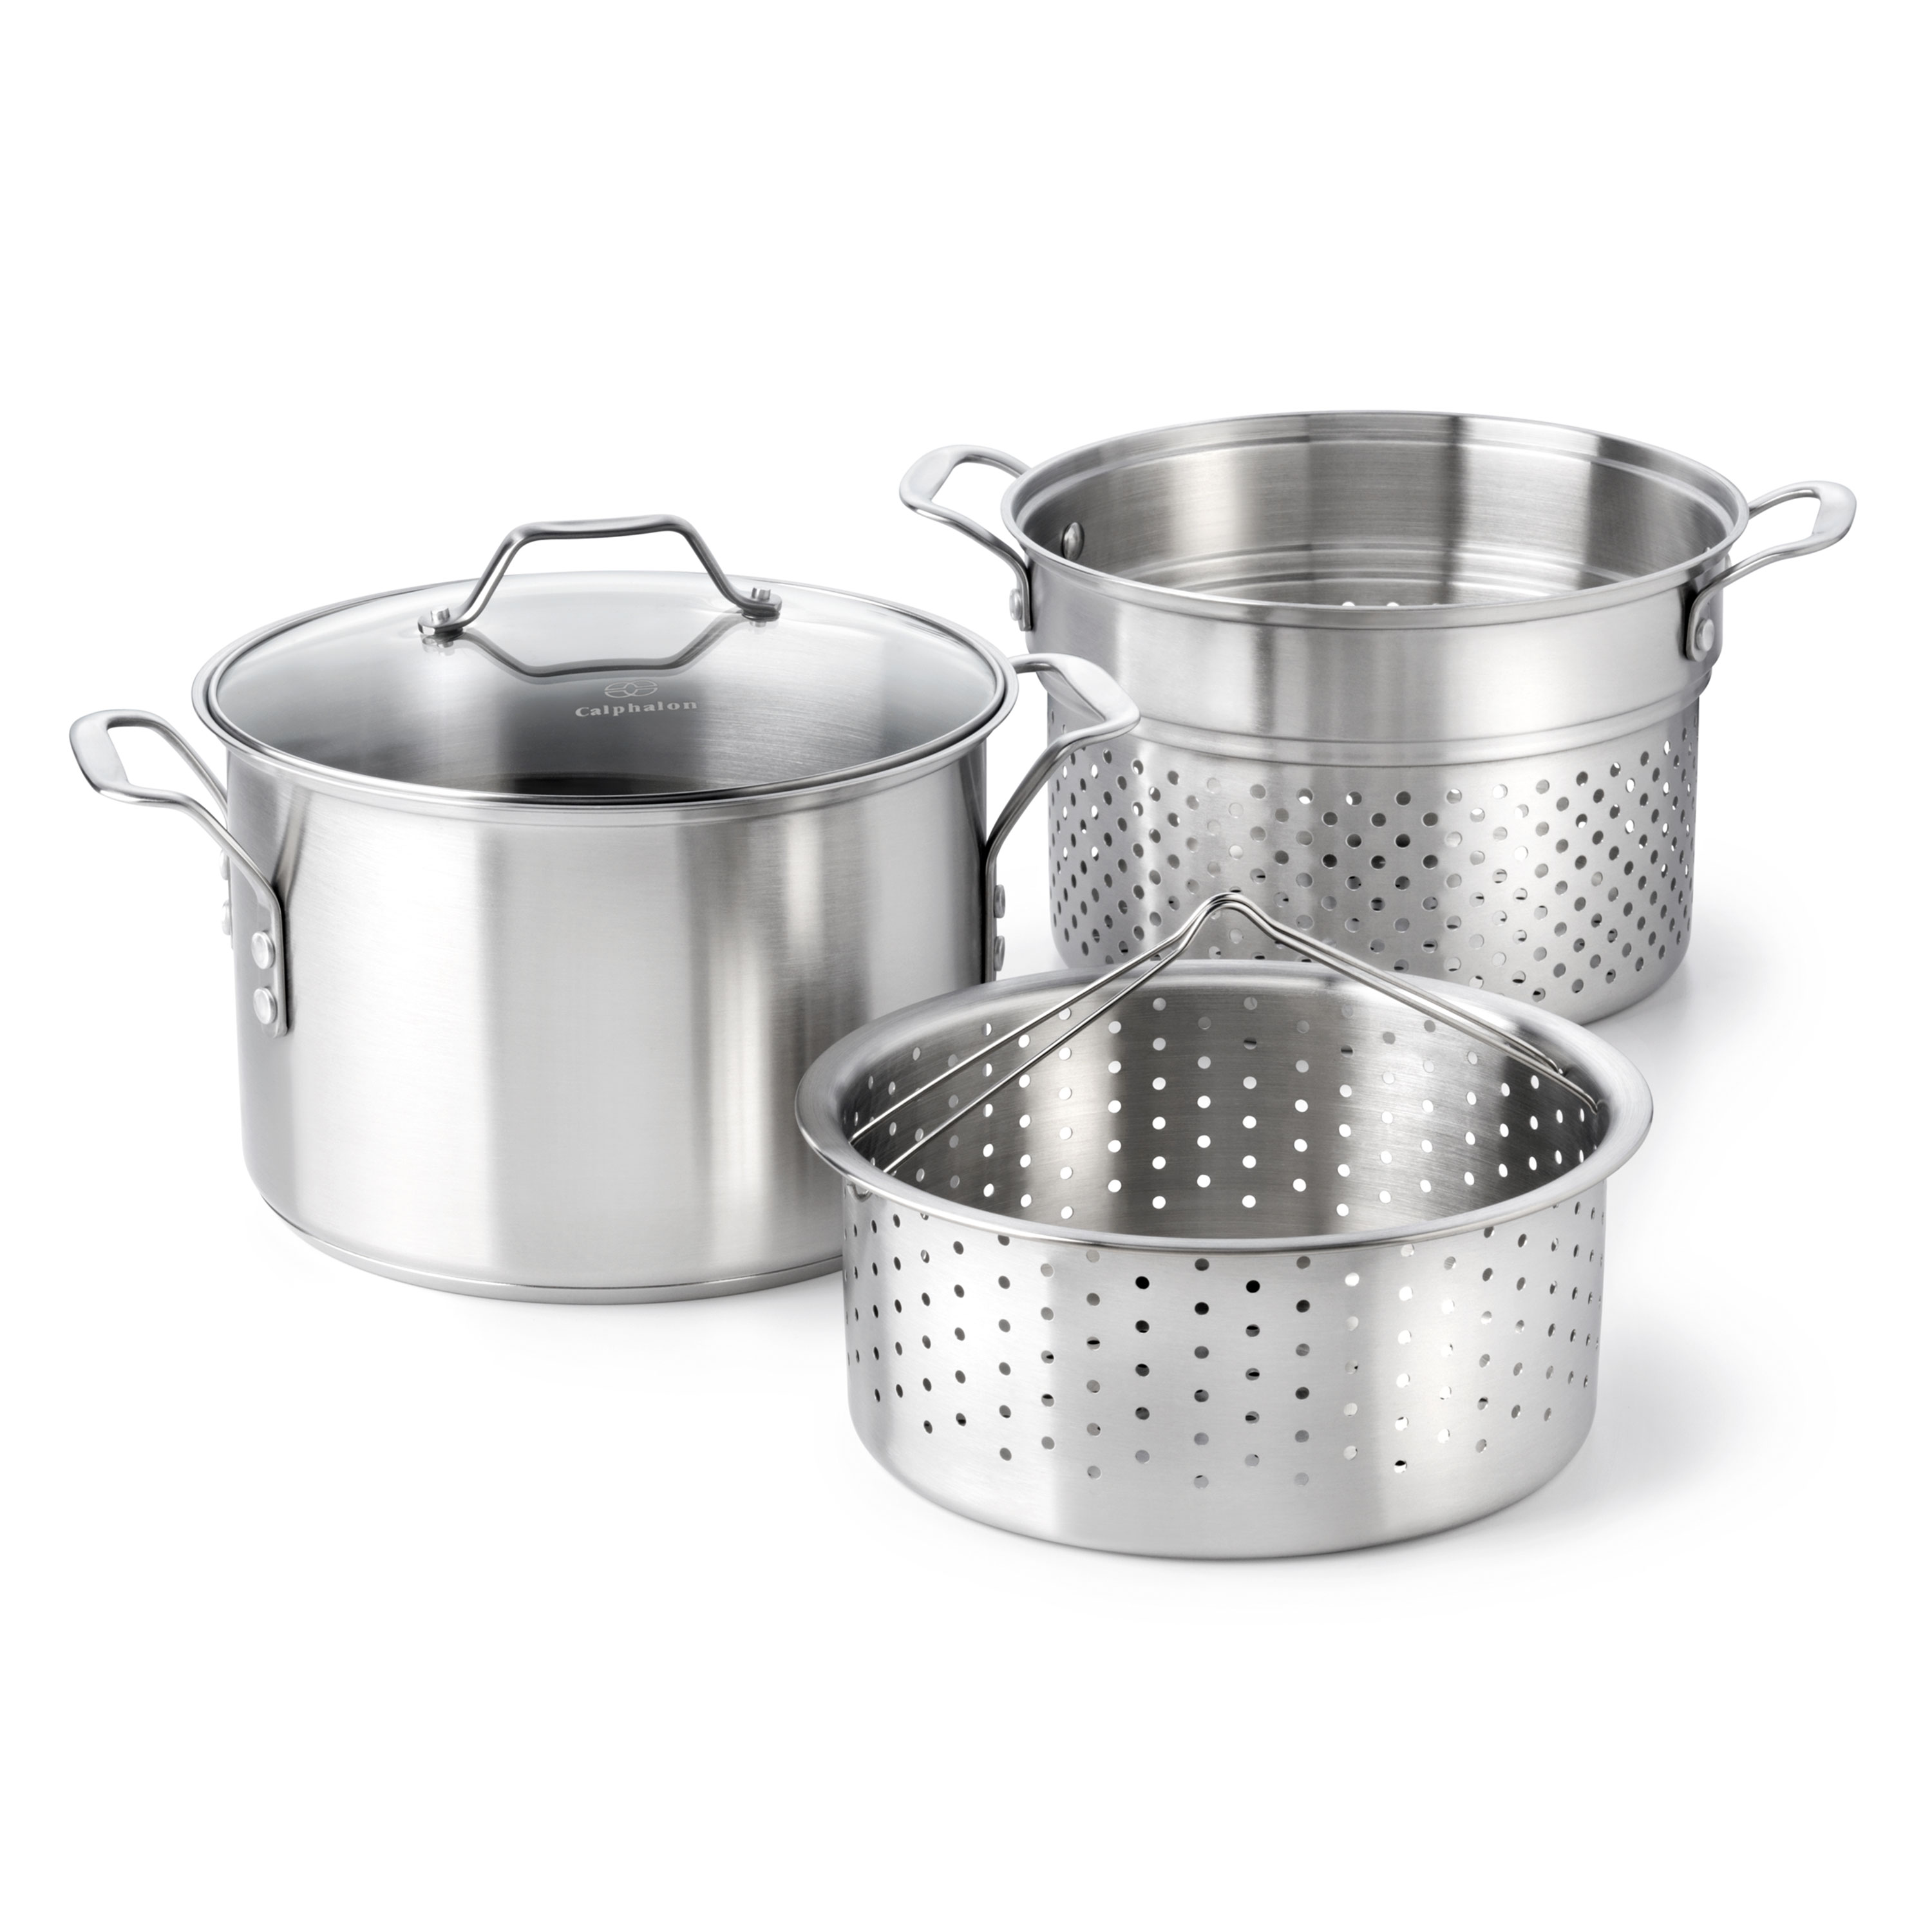 Calphalon Classic Stainless Steel 8-Quart Multi-Pot, VMP8P